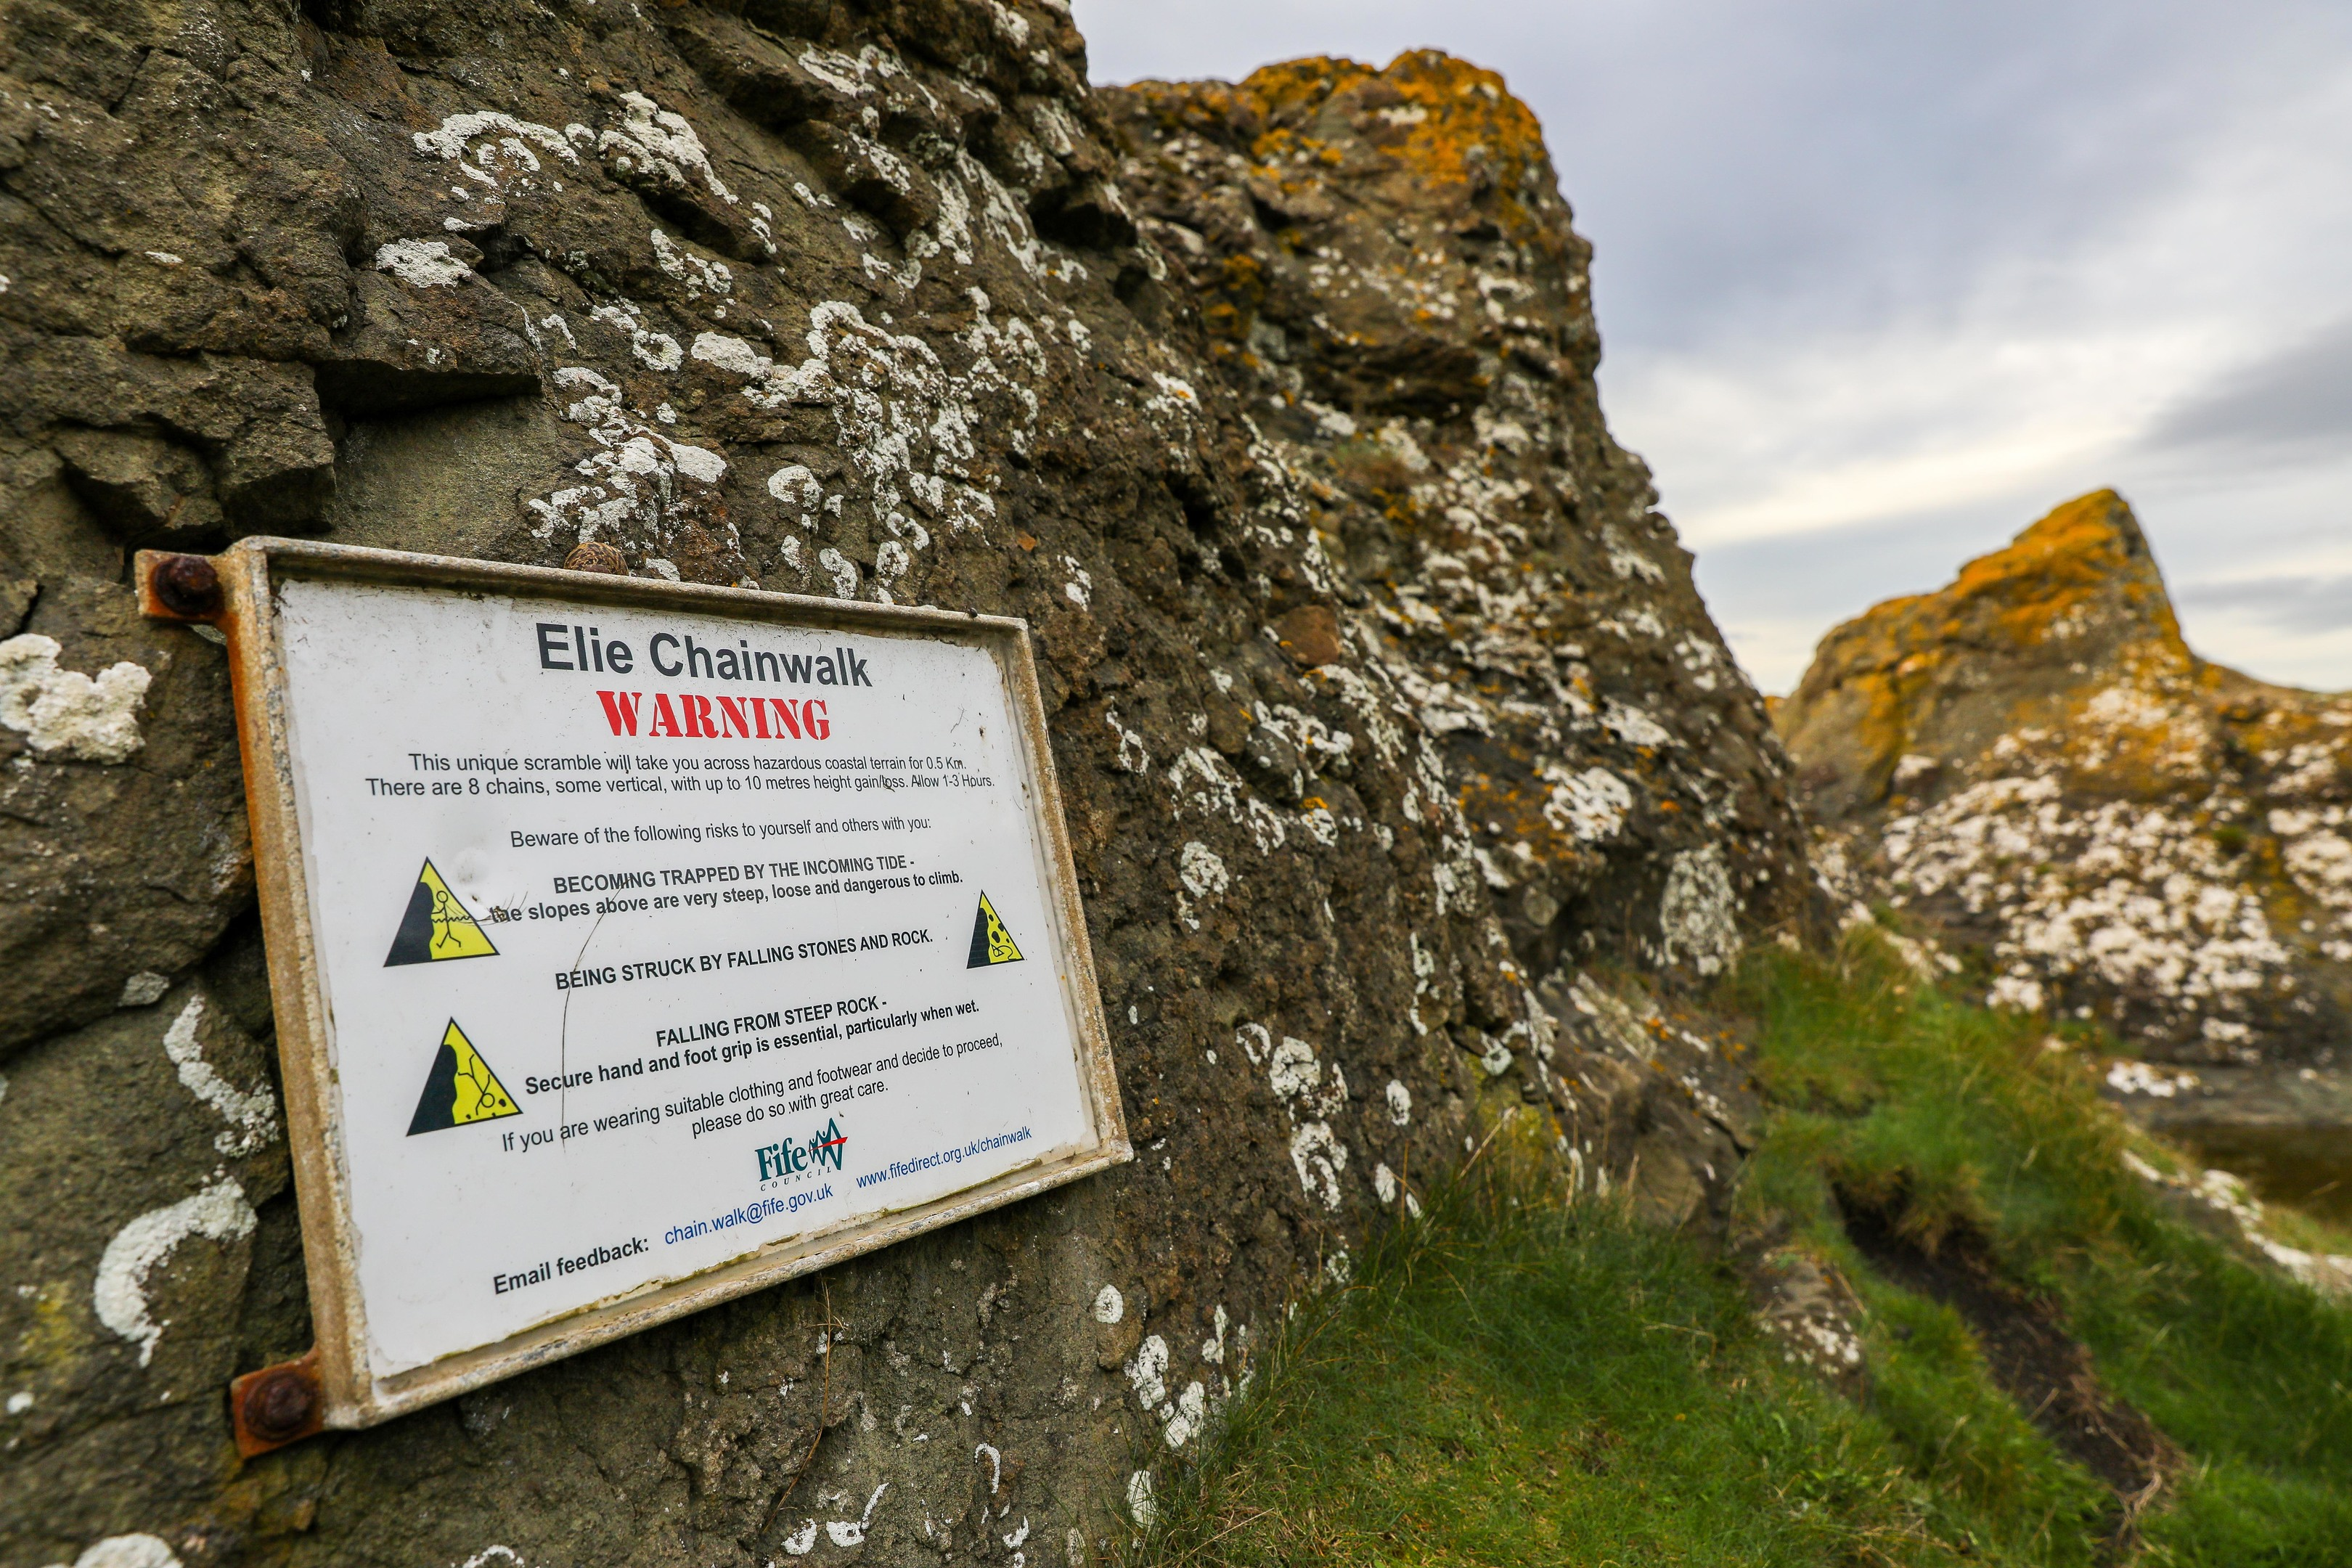 Signage warning of the dangers of the Chain Walk and tides.